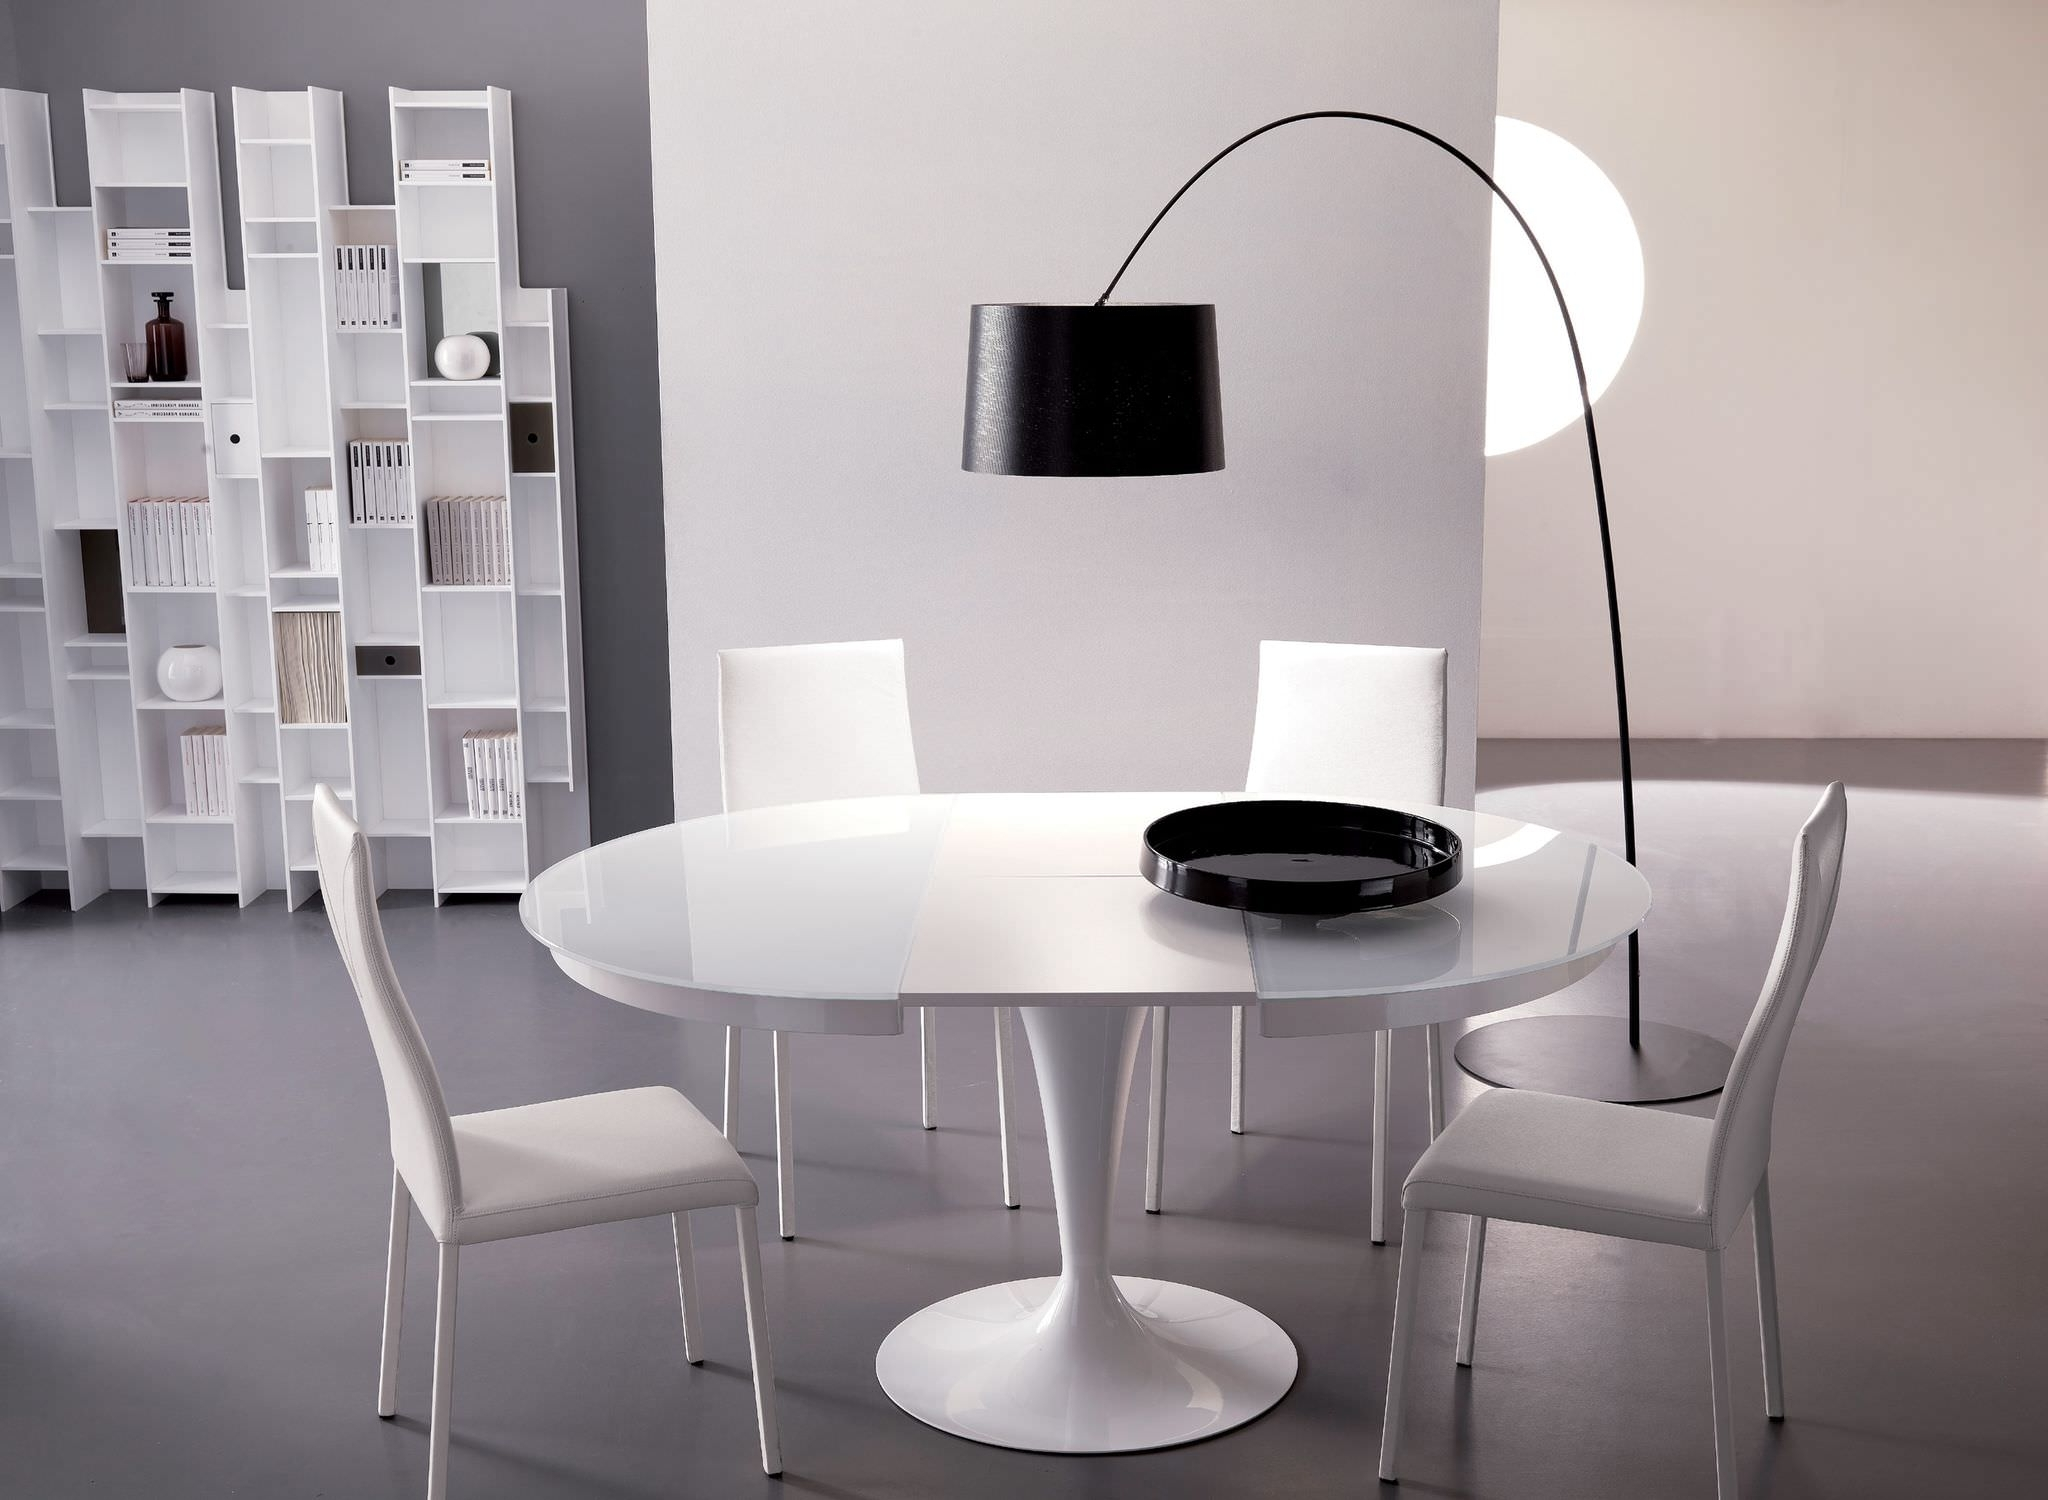 Trendy Dining Table: Archaic Design Ideas Using Rounded Black Standing Regarding White Round Extendable Dining Tables (View 15 of 25)